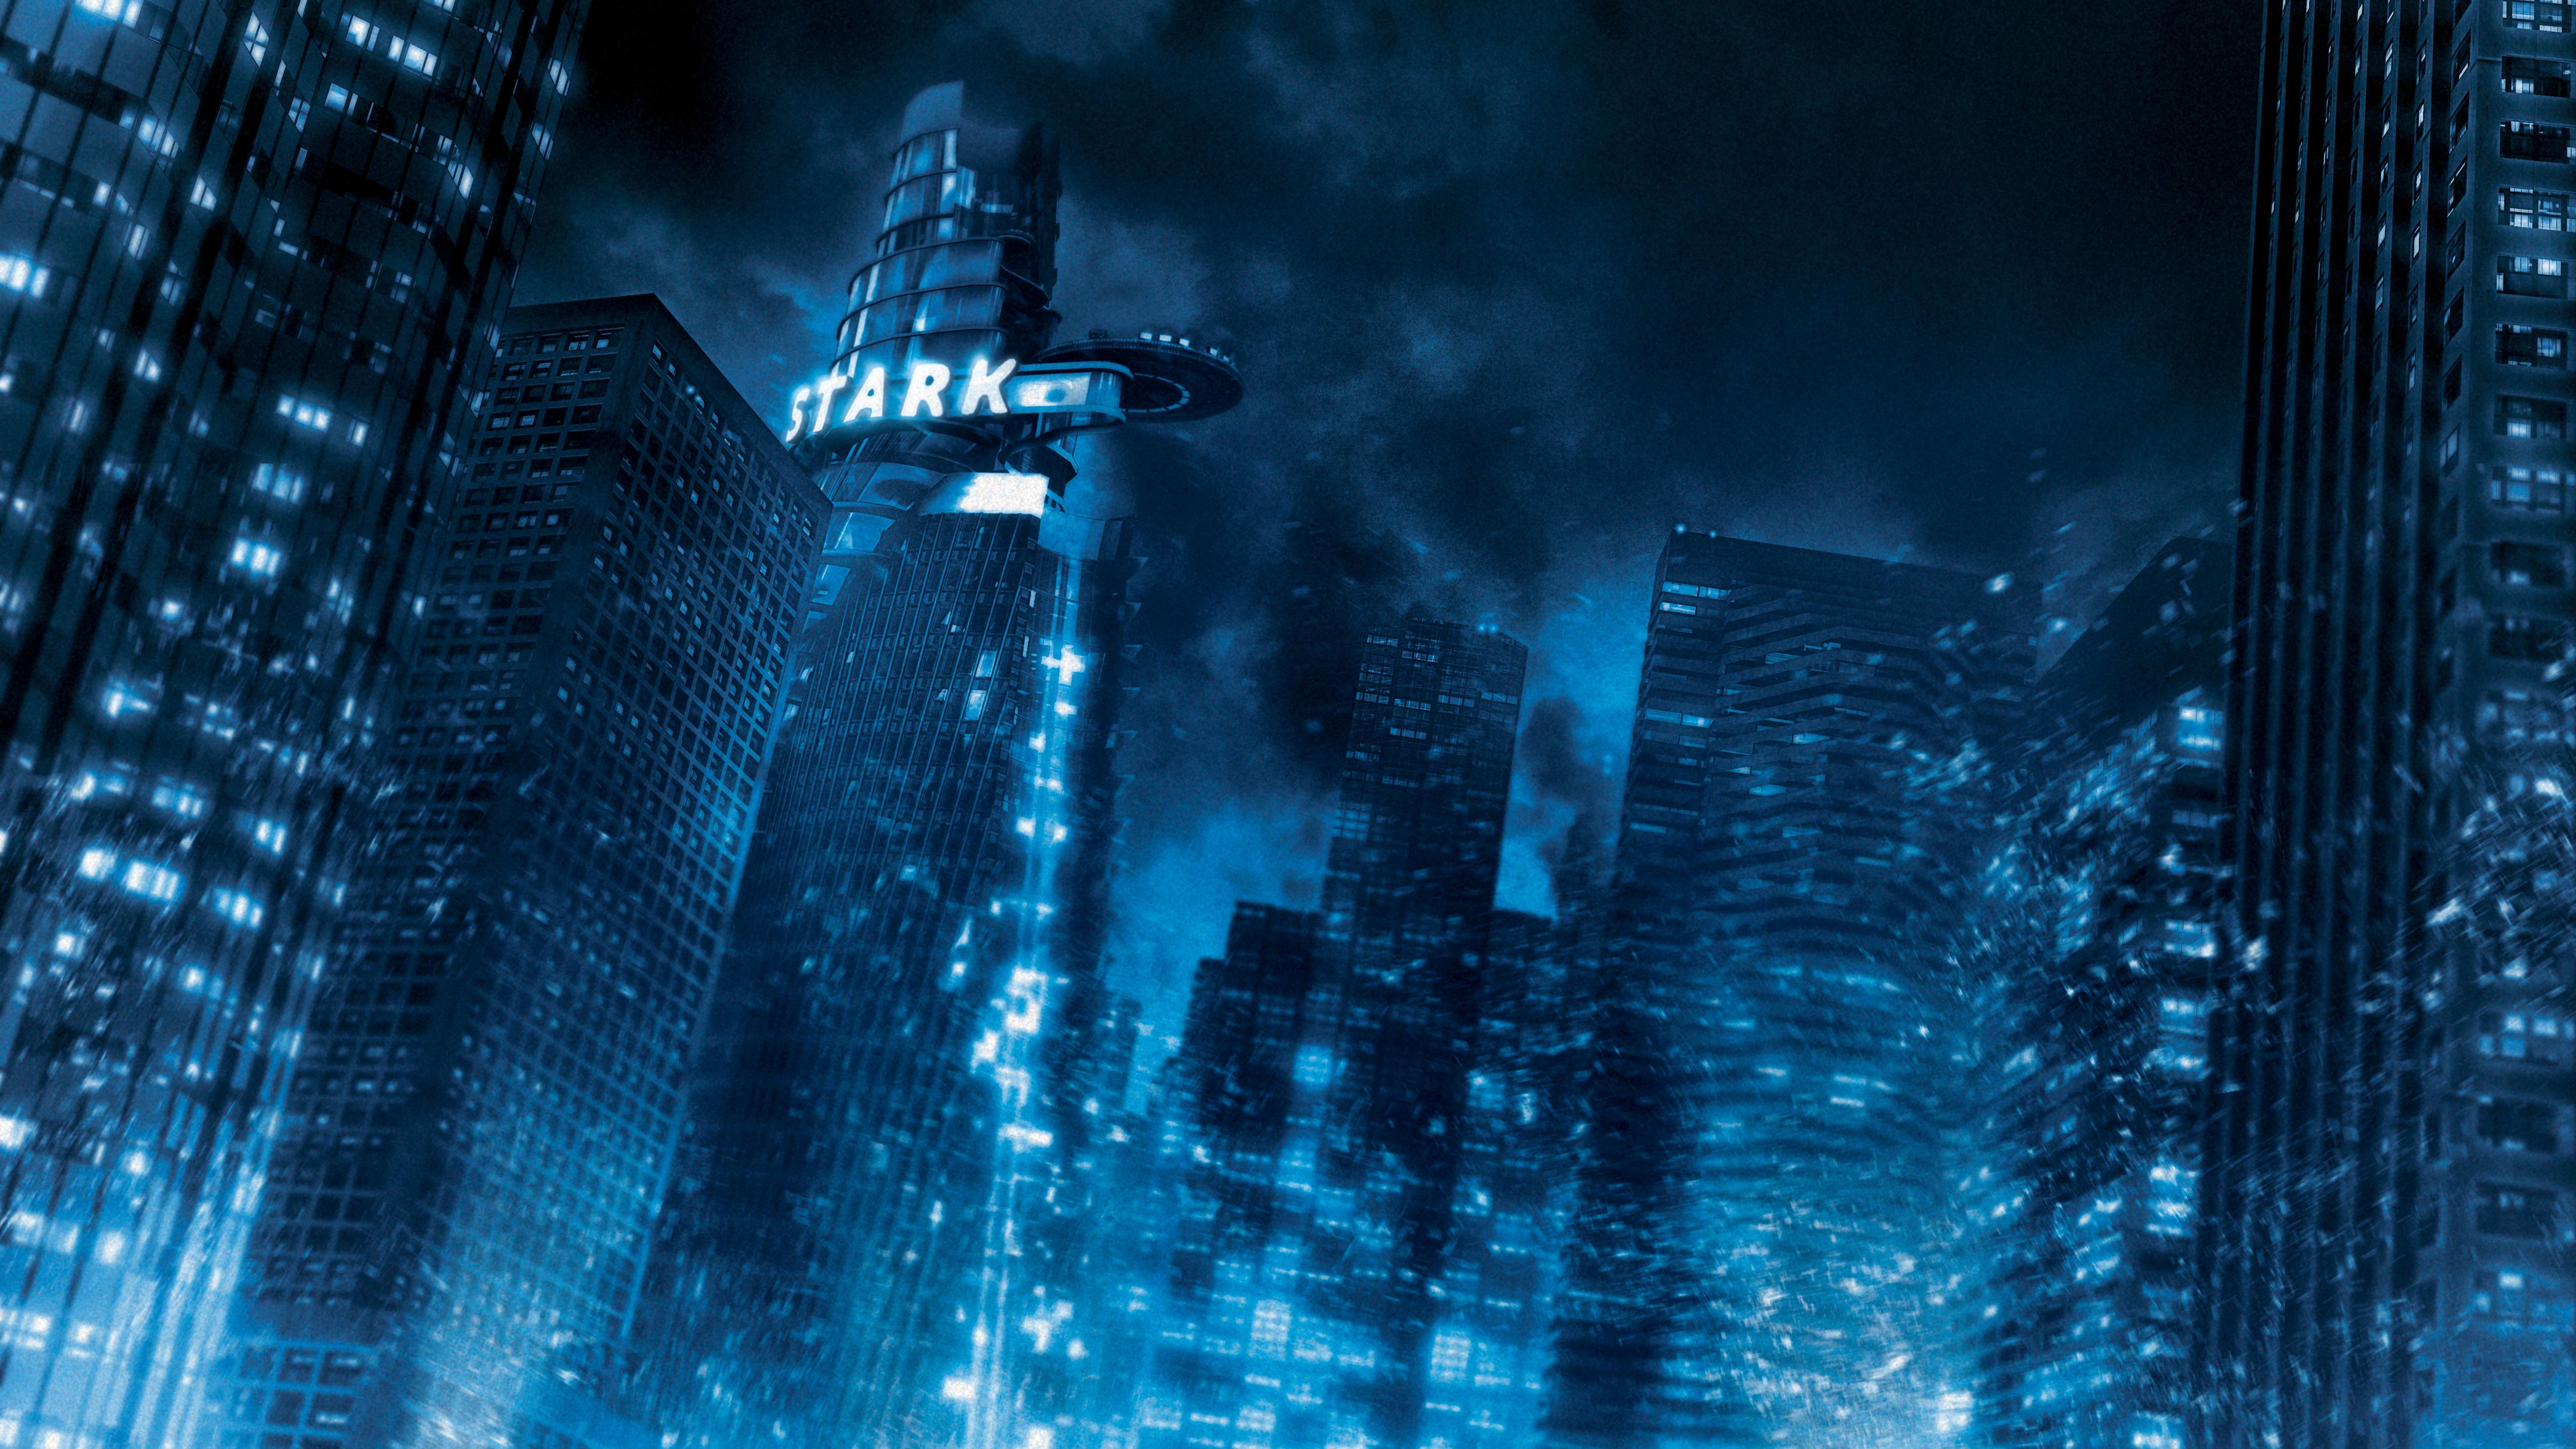 5120x2880 Avengers Stark Tower 5K Wallpapers | Wallpapers HD